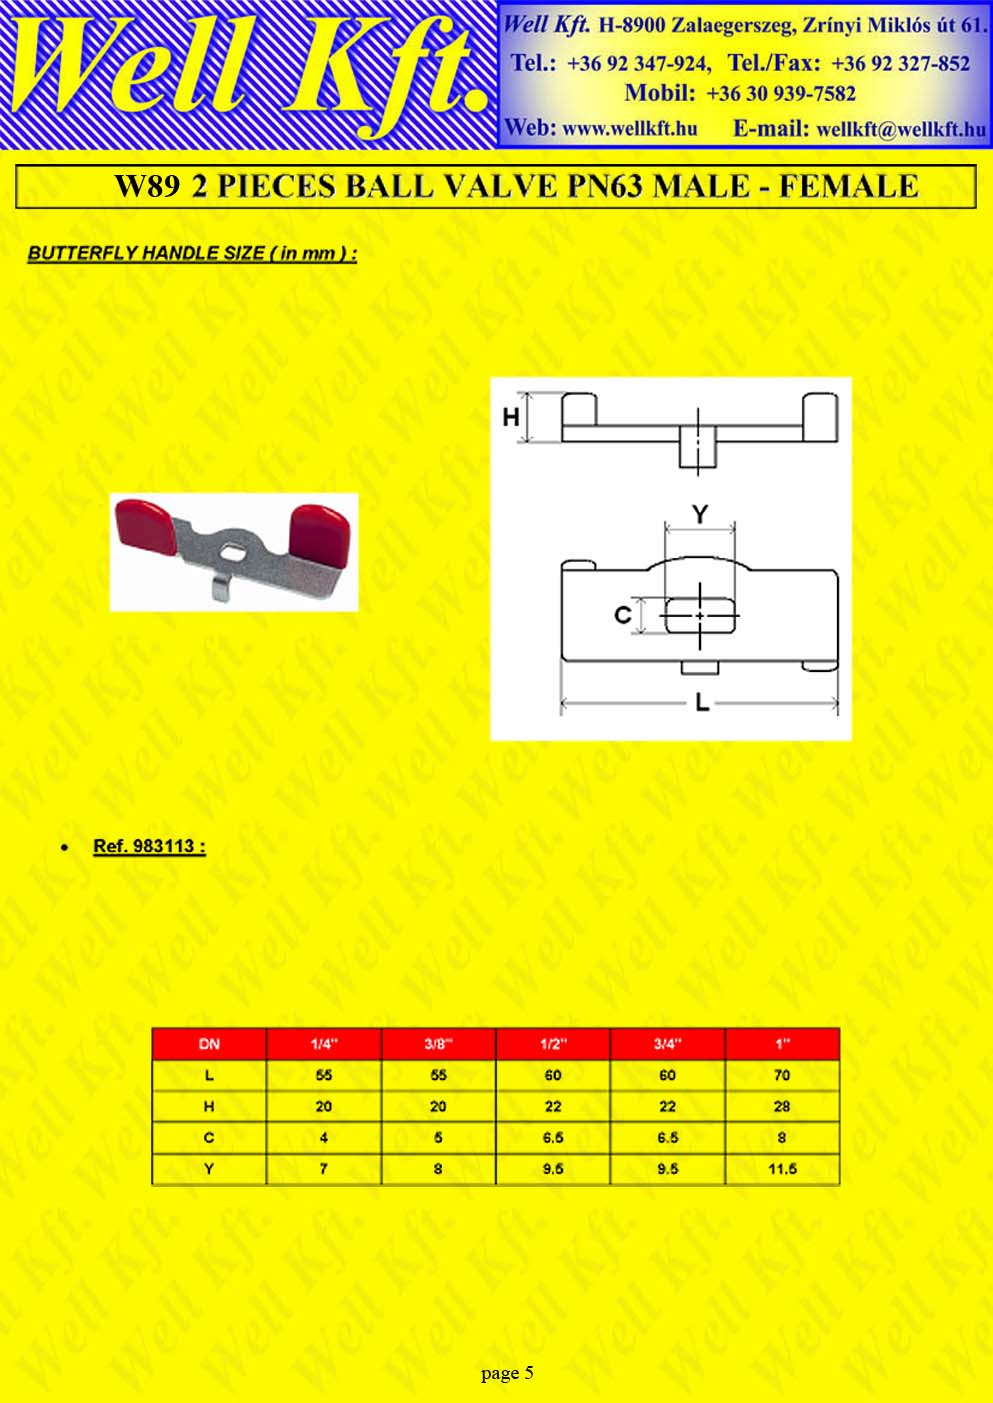 2 pieces ball valve stainless steel, male-female (5.)